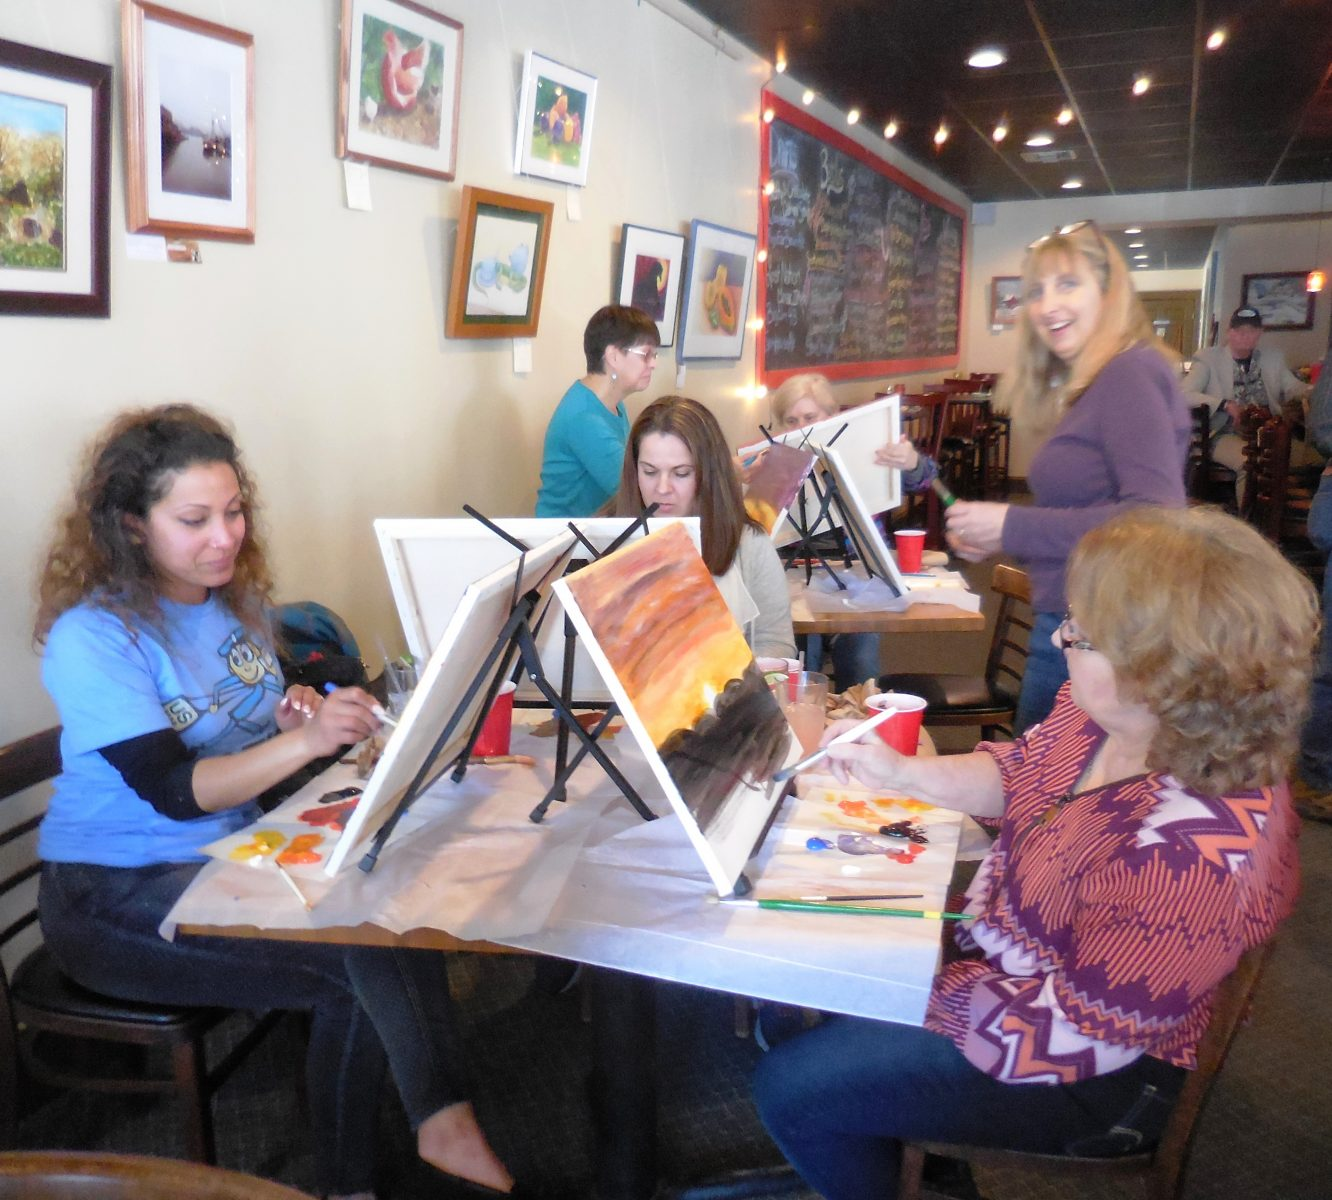 Southern Hilltowns Adult Ed fundraiser and free classes announced